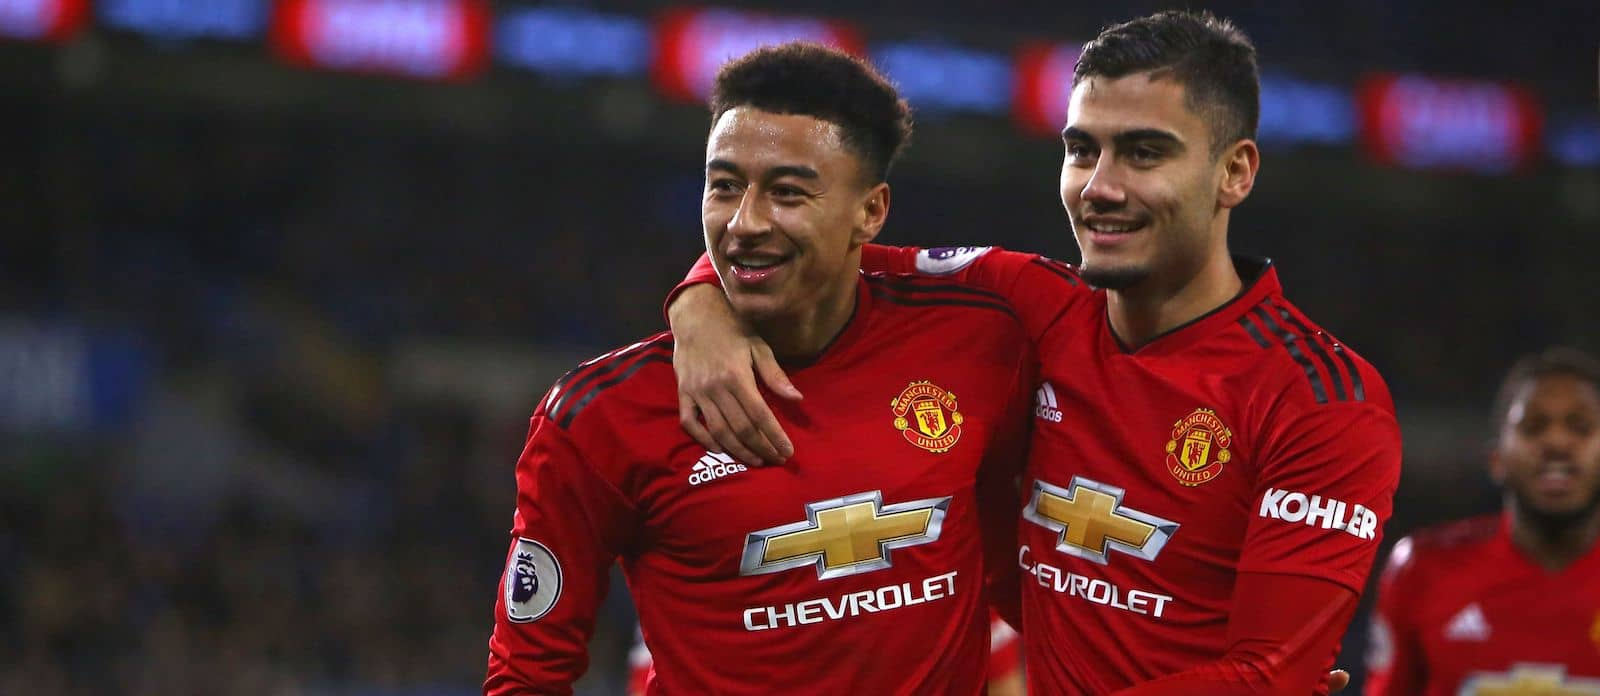 Simone Inghazi: Andreas Pereira would be perfect for us